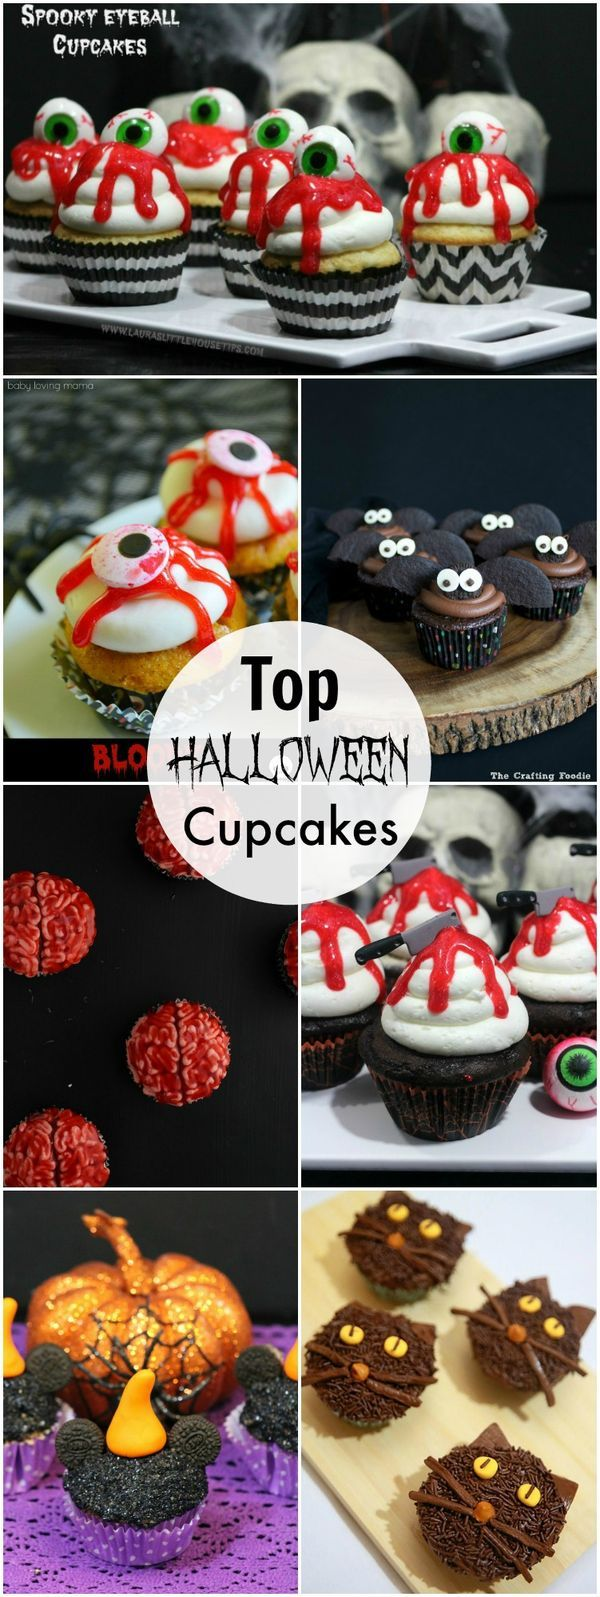 Top Halloween Cupcakes recipes that are the perfect cupcakes for any Halloween party.